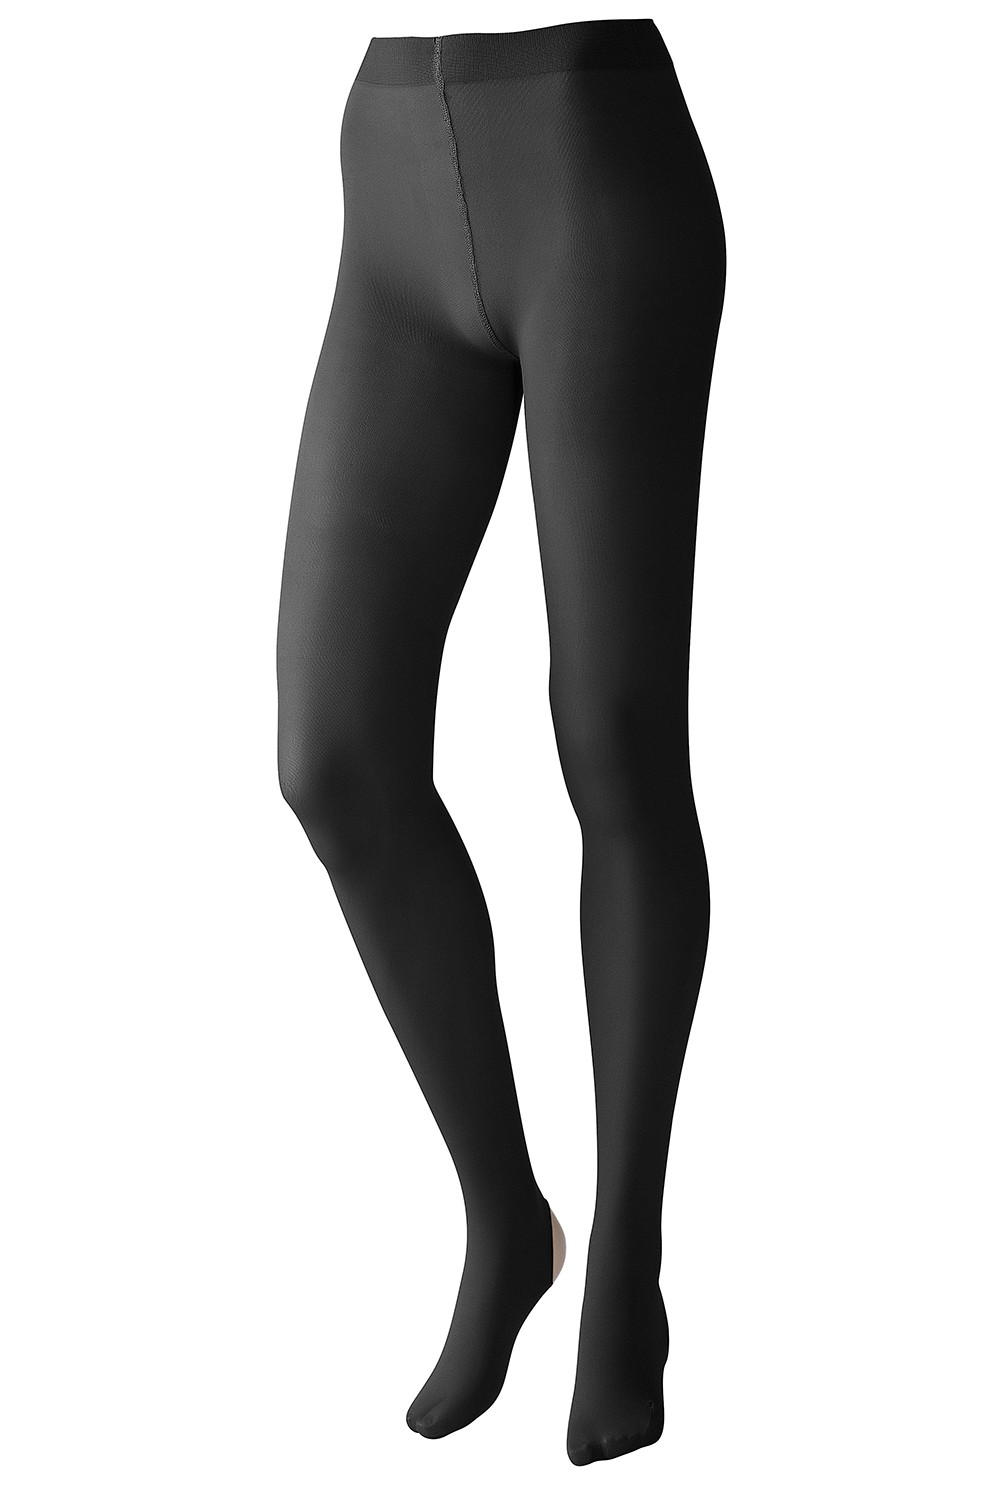 Convertible Tights Children's Dance Tights